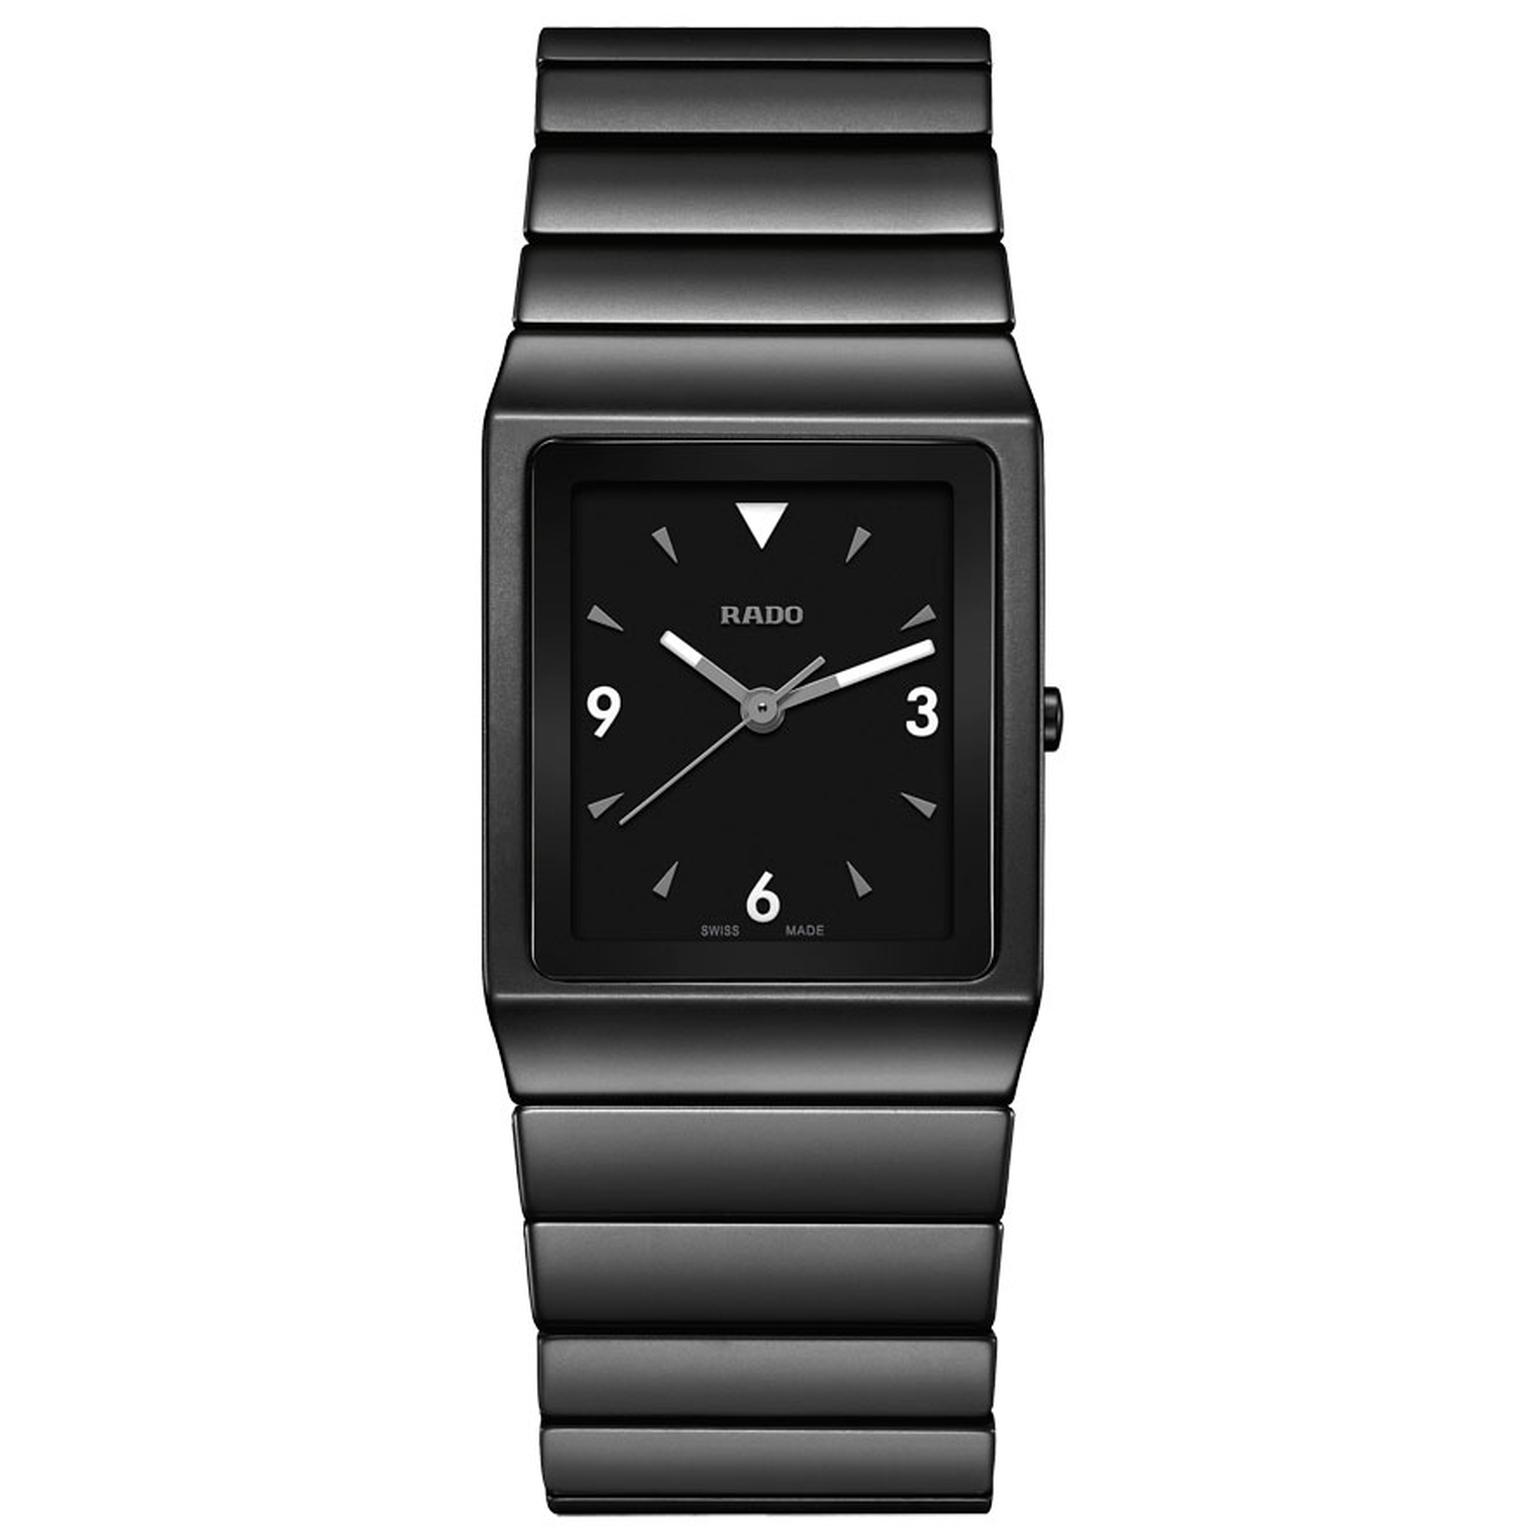 Rado Ceramica signature ceramic watch in black